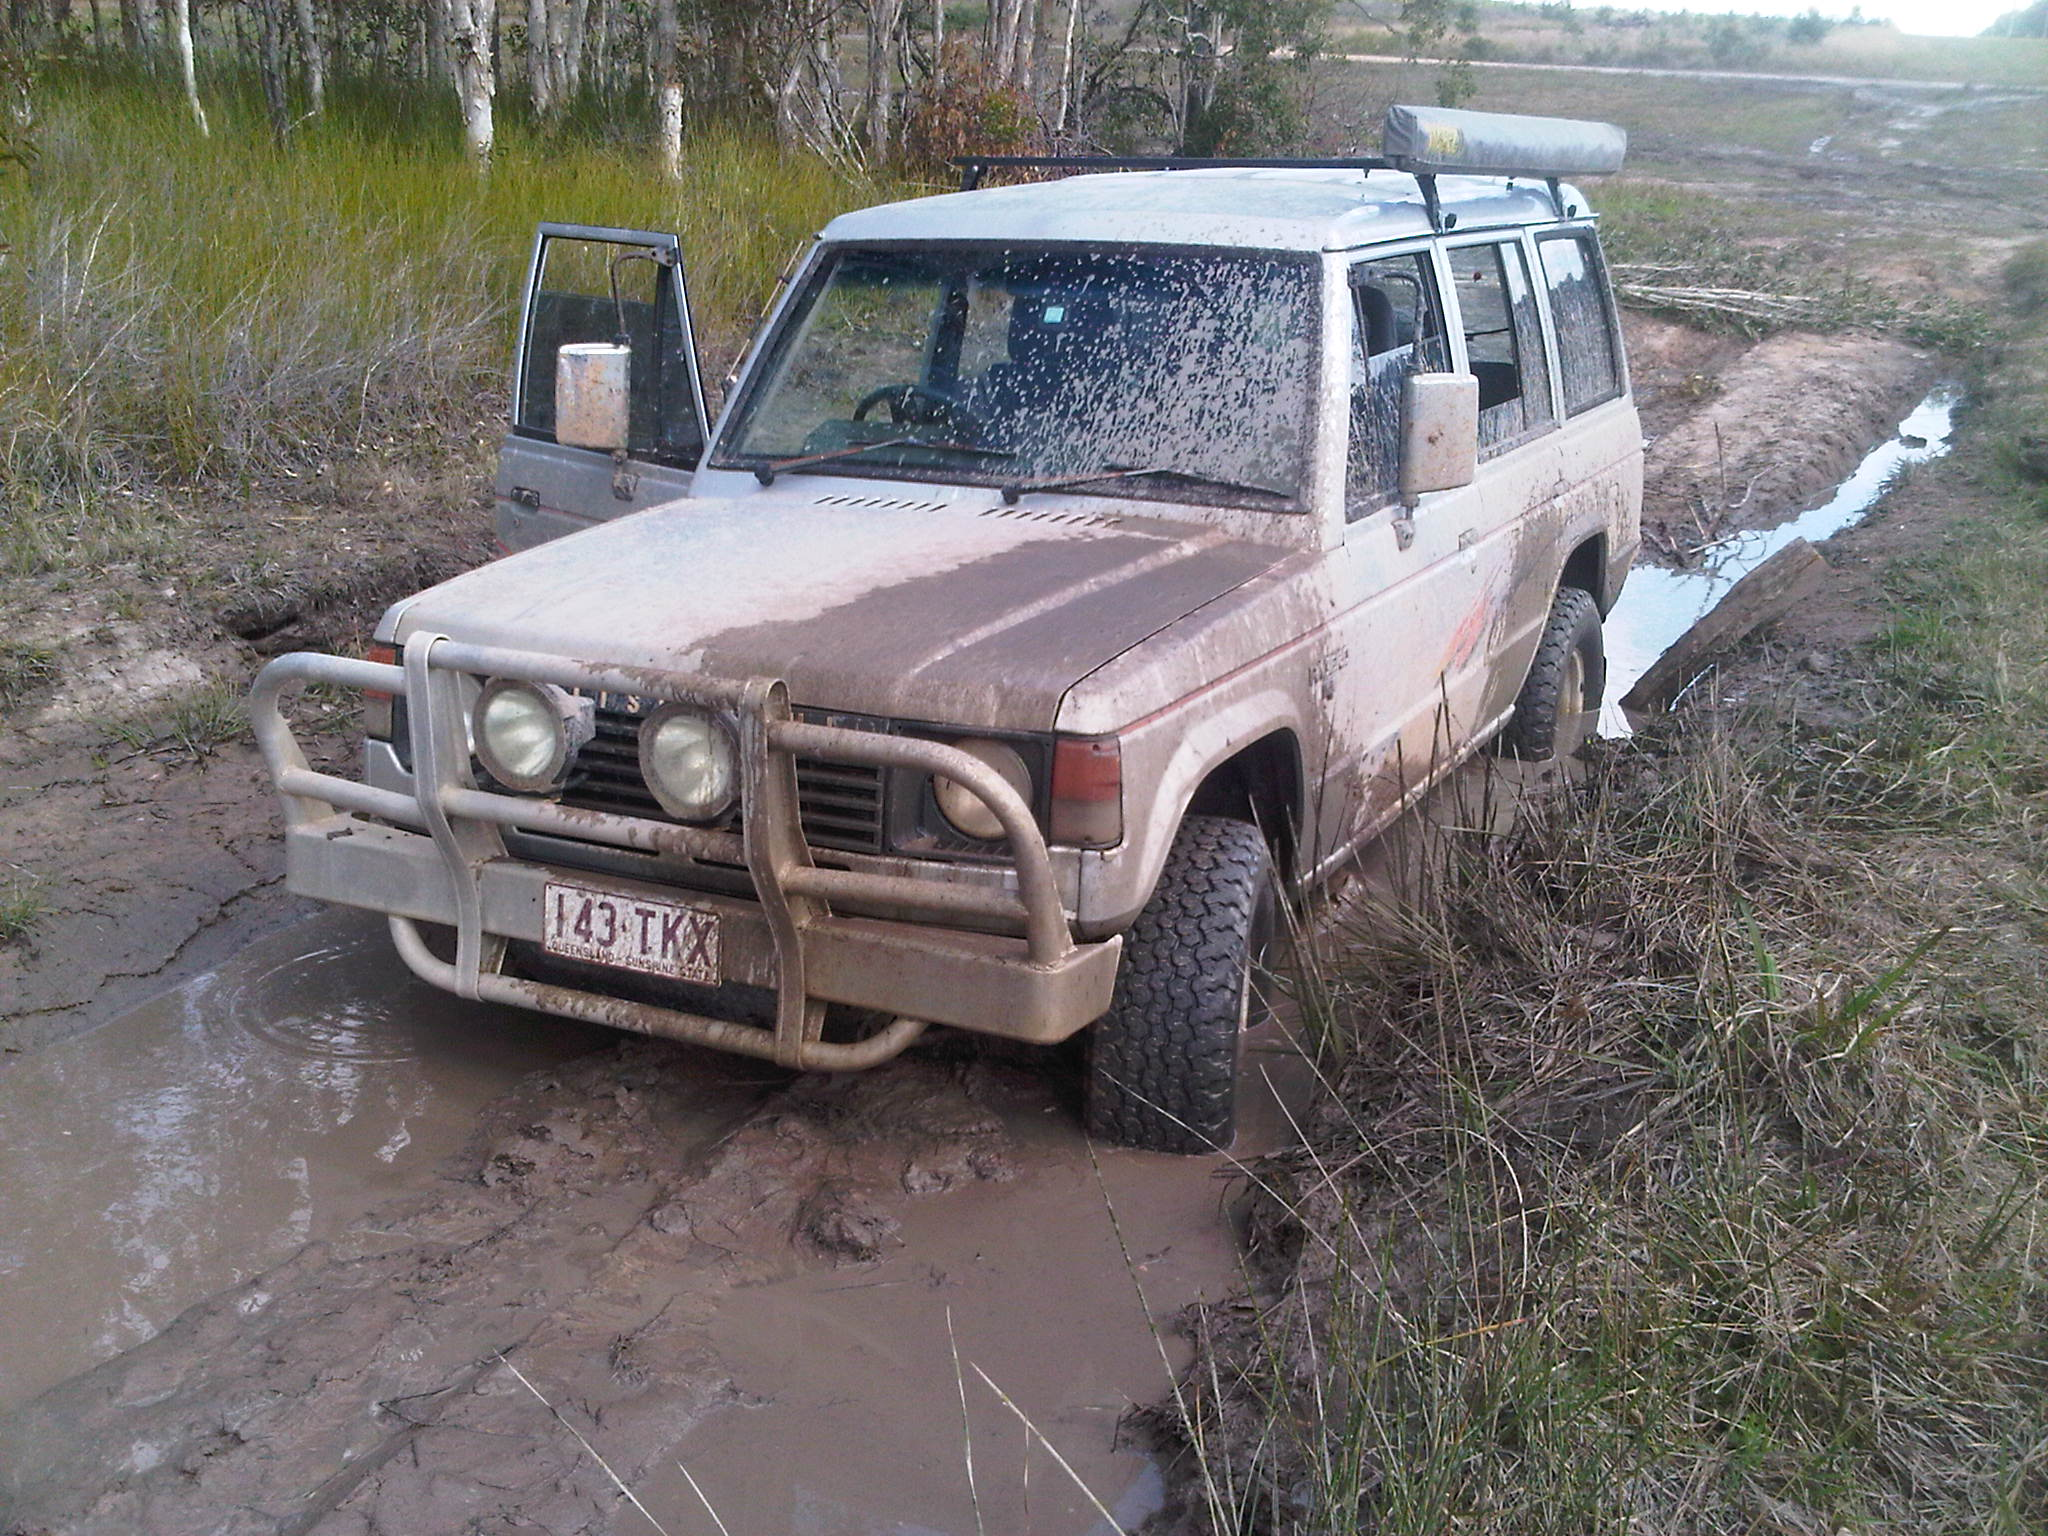 Still Bogged